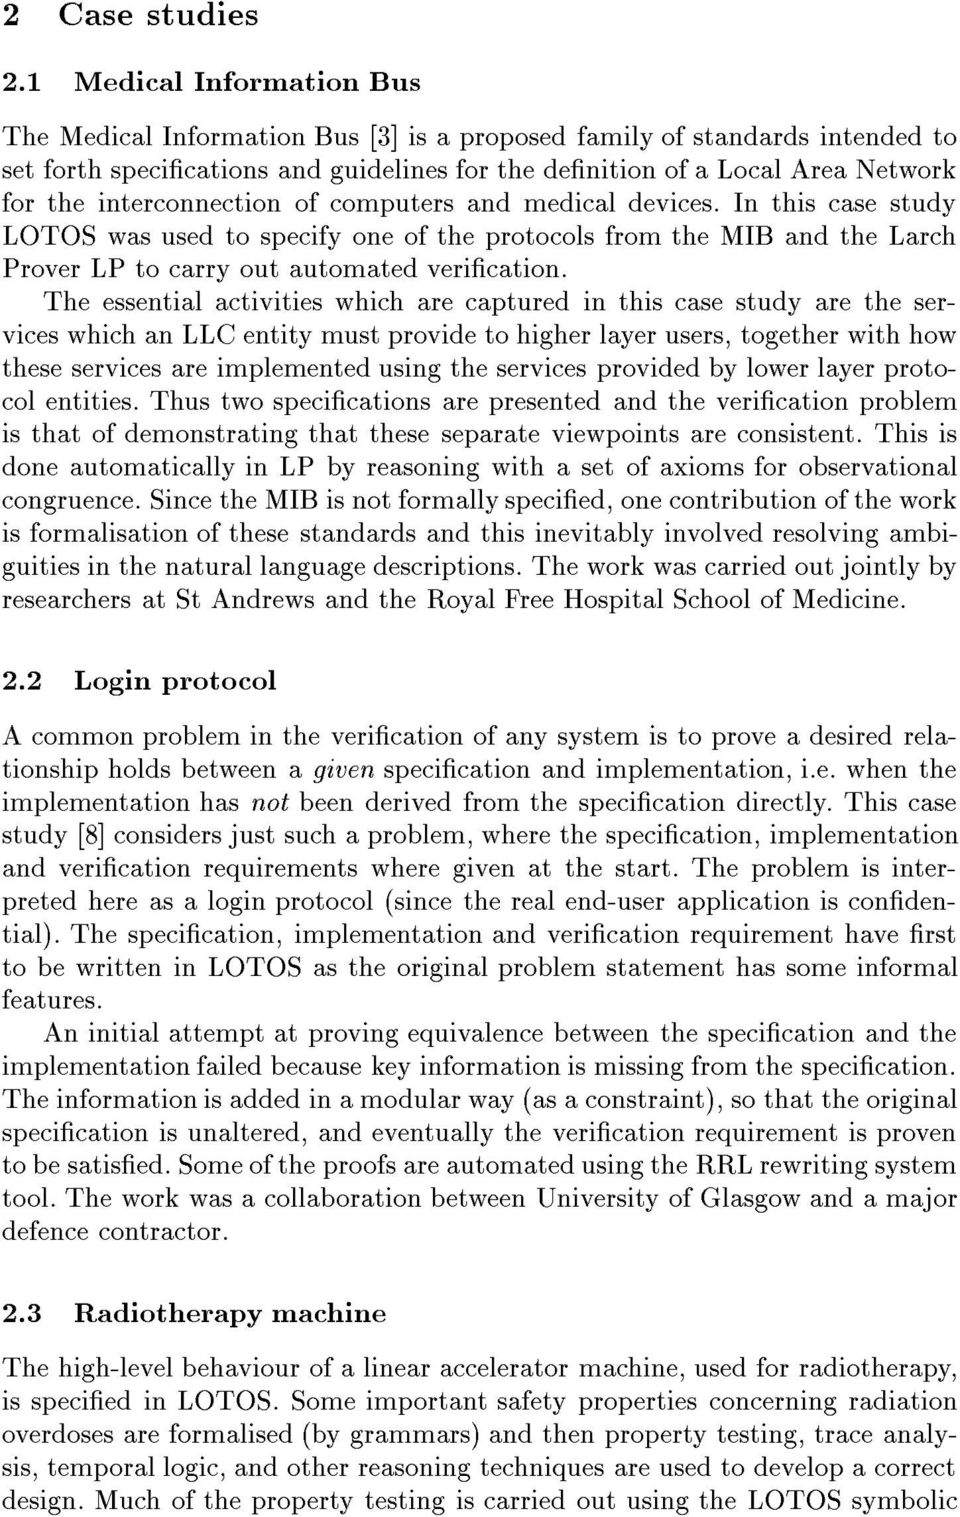 interconnection of computers and medical devices. In this case study LOTOS was used to specify one of the protocols from the MIB and the Larch Prover LP to carry out automated verication.